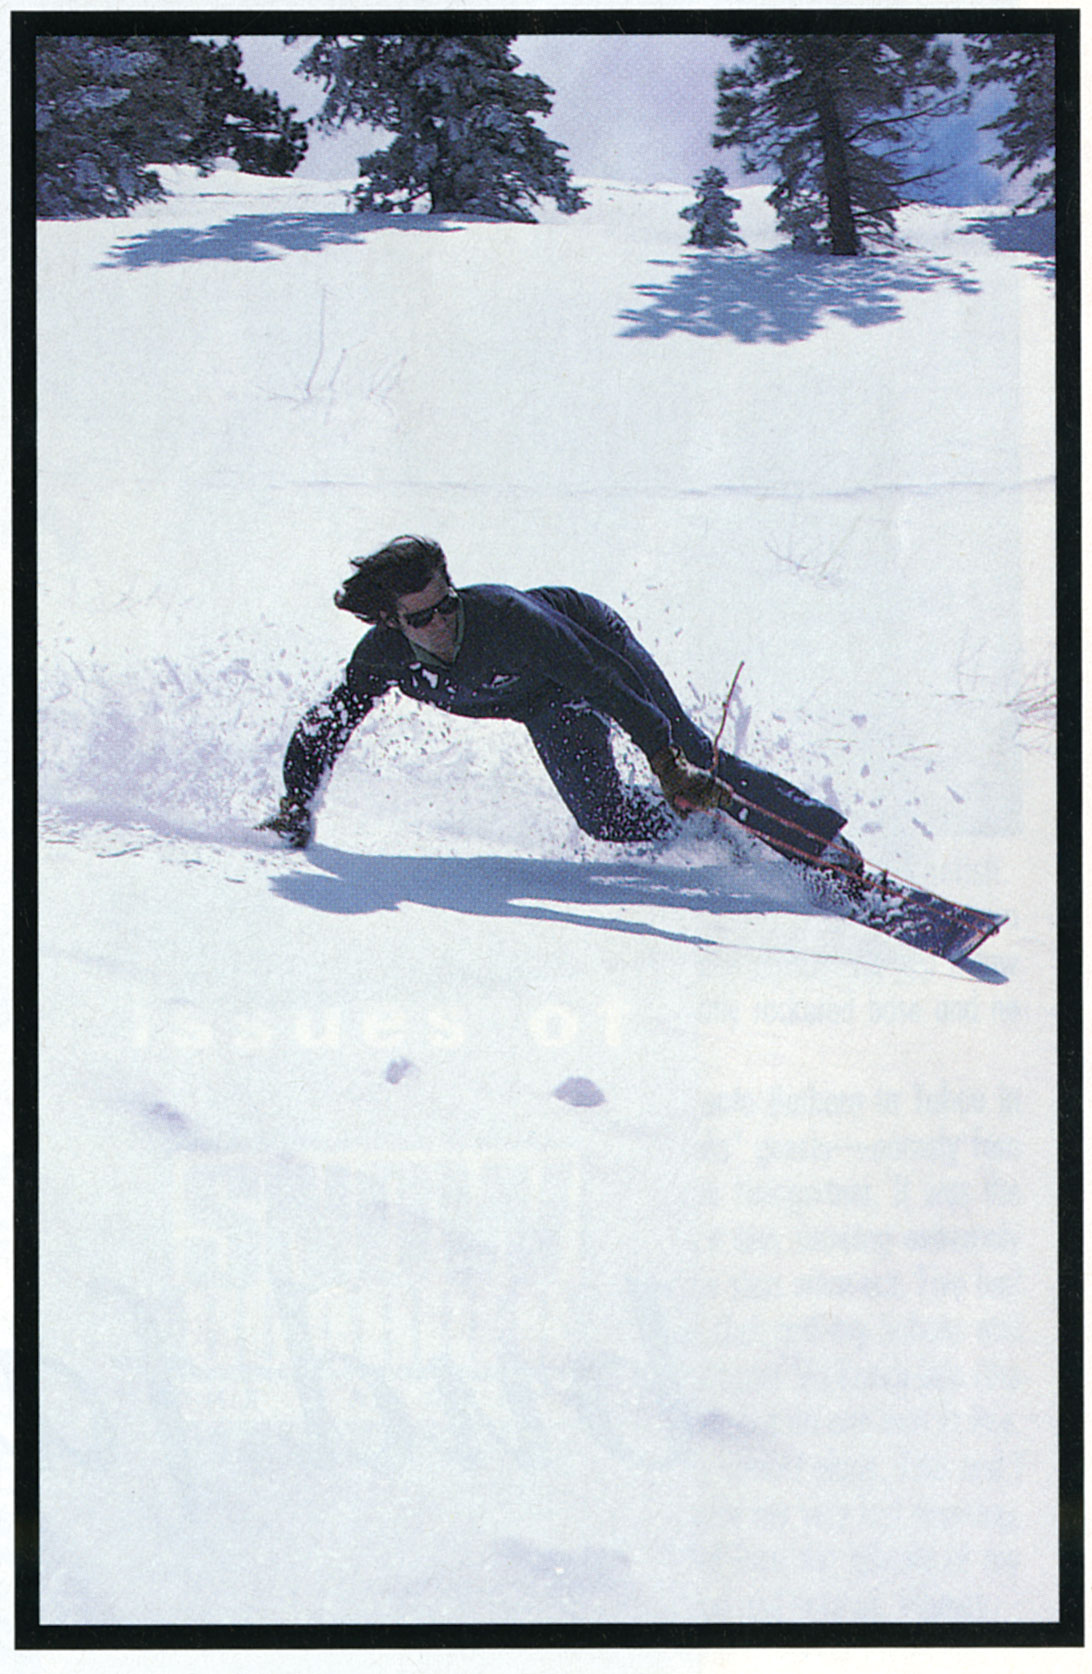 Jake Burton Carpenter getting his steeze on in 1977. Photo: James Cassimus